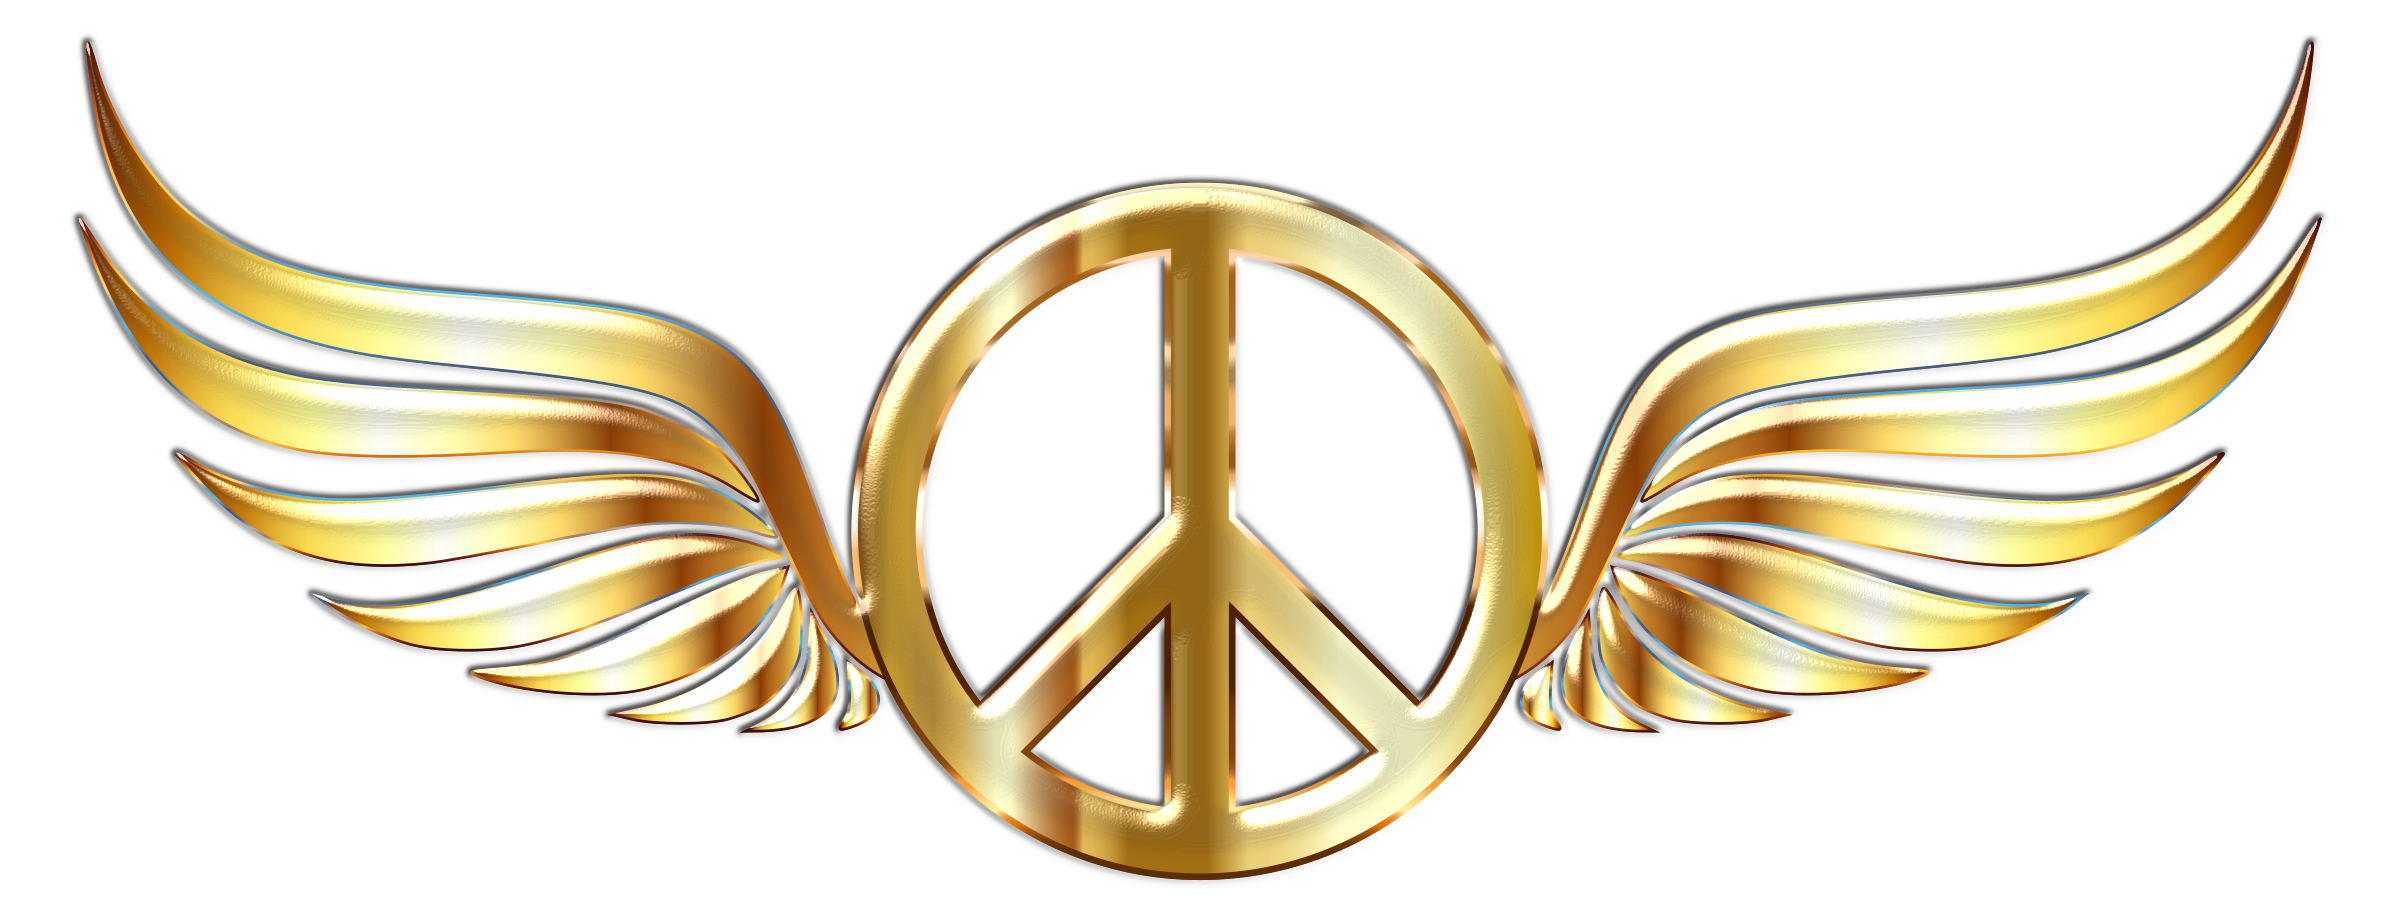 Gold Peace Sign Wings Enhanced 2 No Background by GDJ